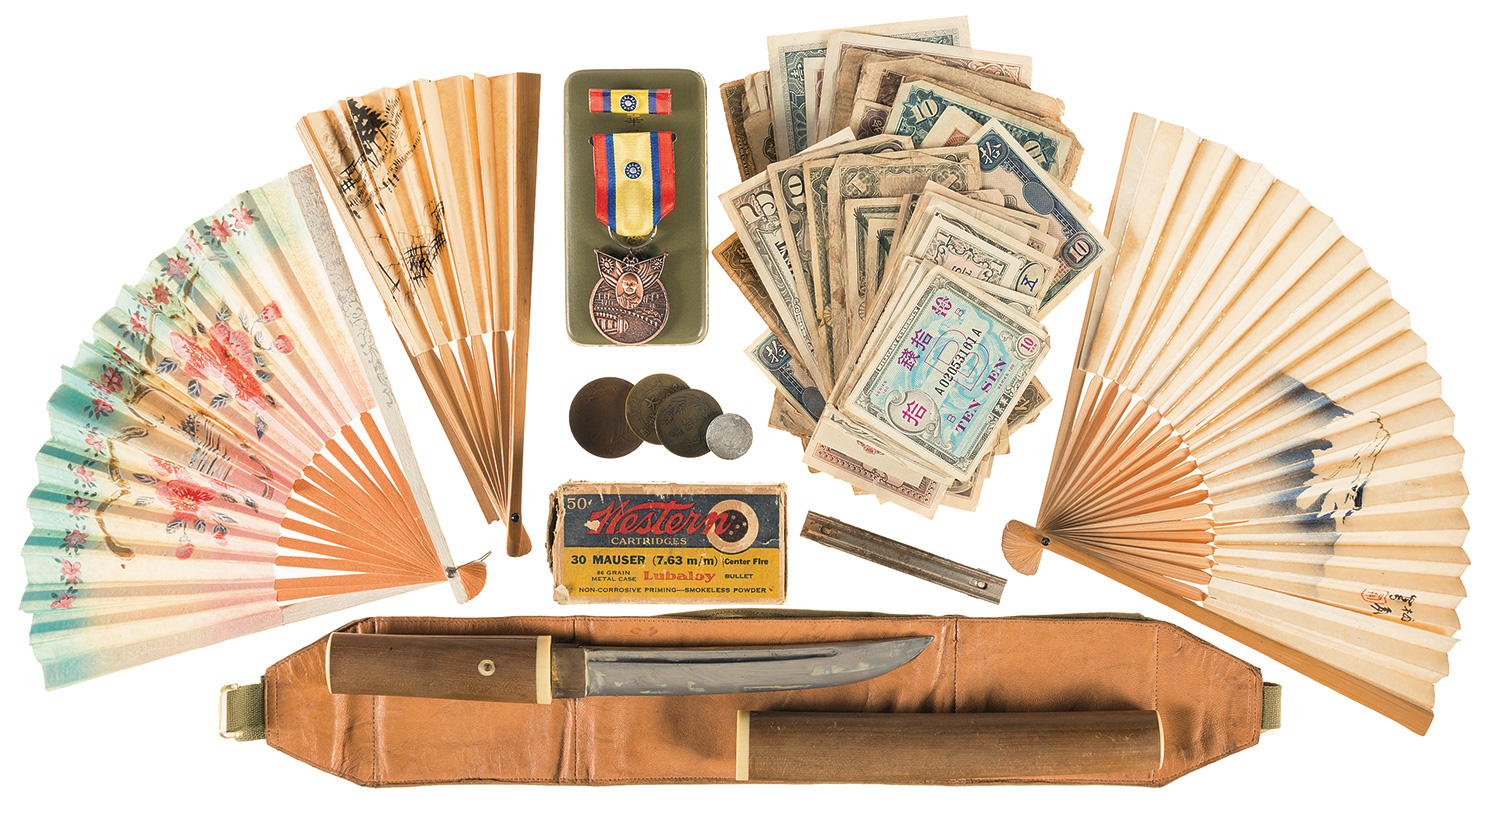 Memorabilia included with the pistol. (Picture courtesy Rock Island Auction).